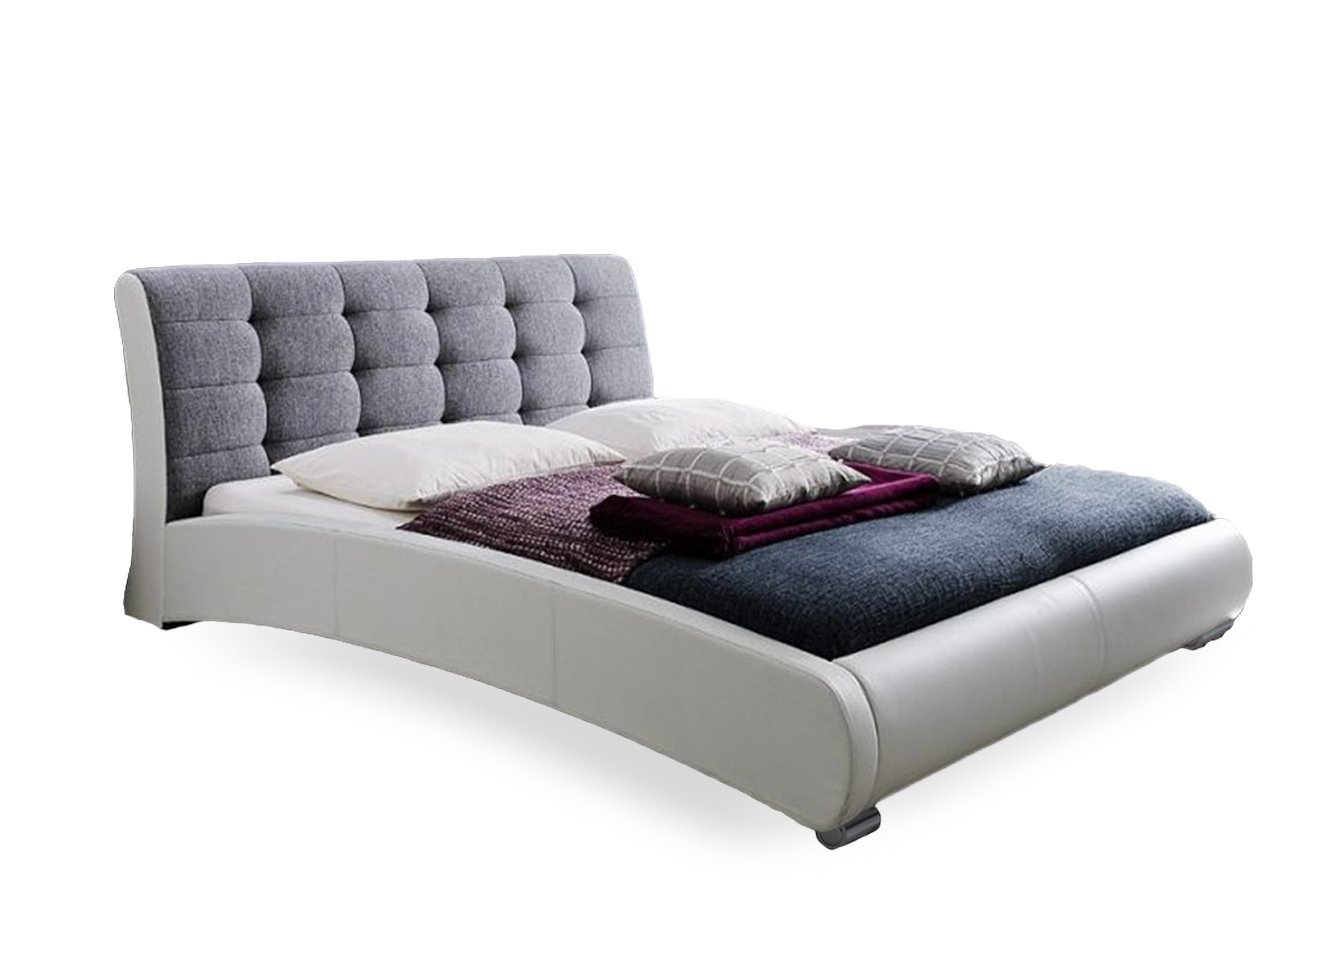 amazoncom baxton studio guerin white faux leather fabric two tone upholstered grid tufted platform bed queen grey kitchen u0026 dining